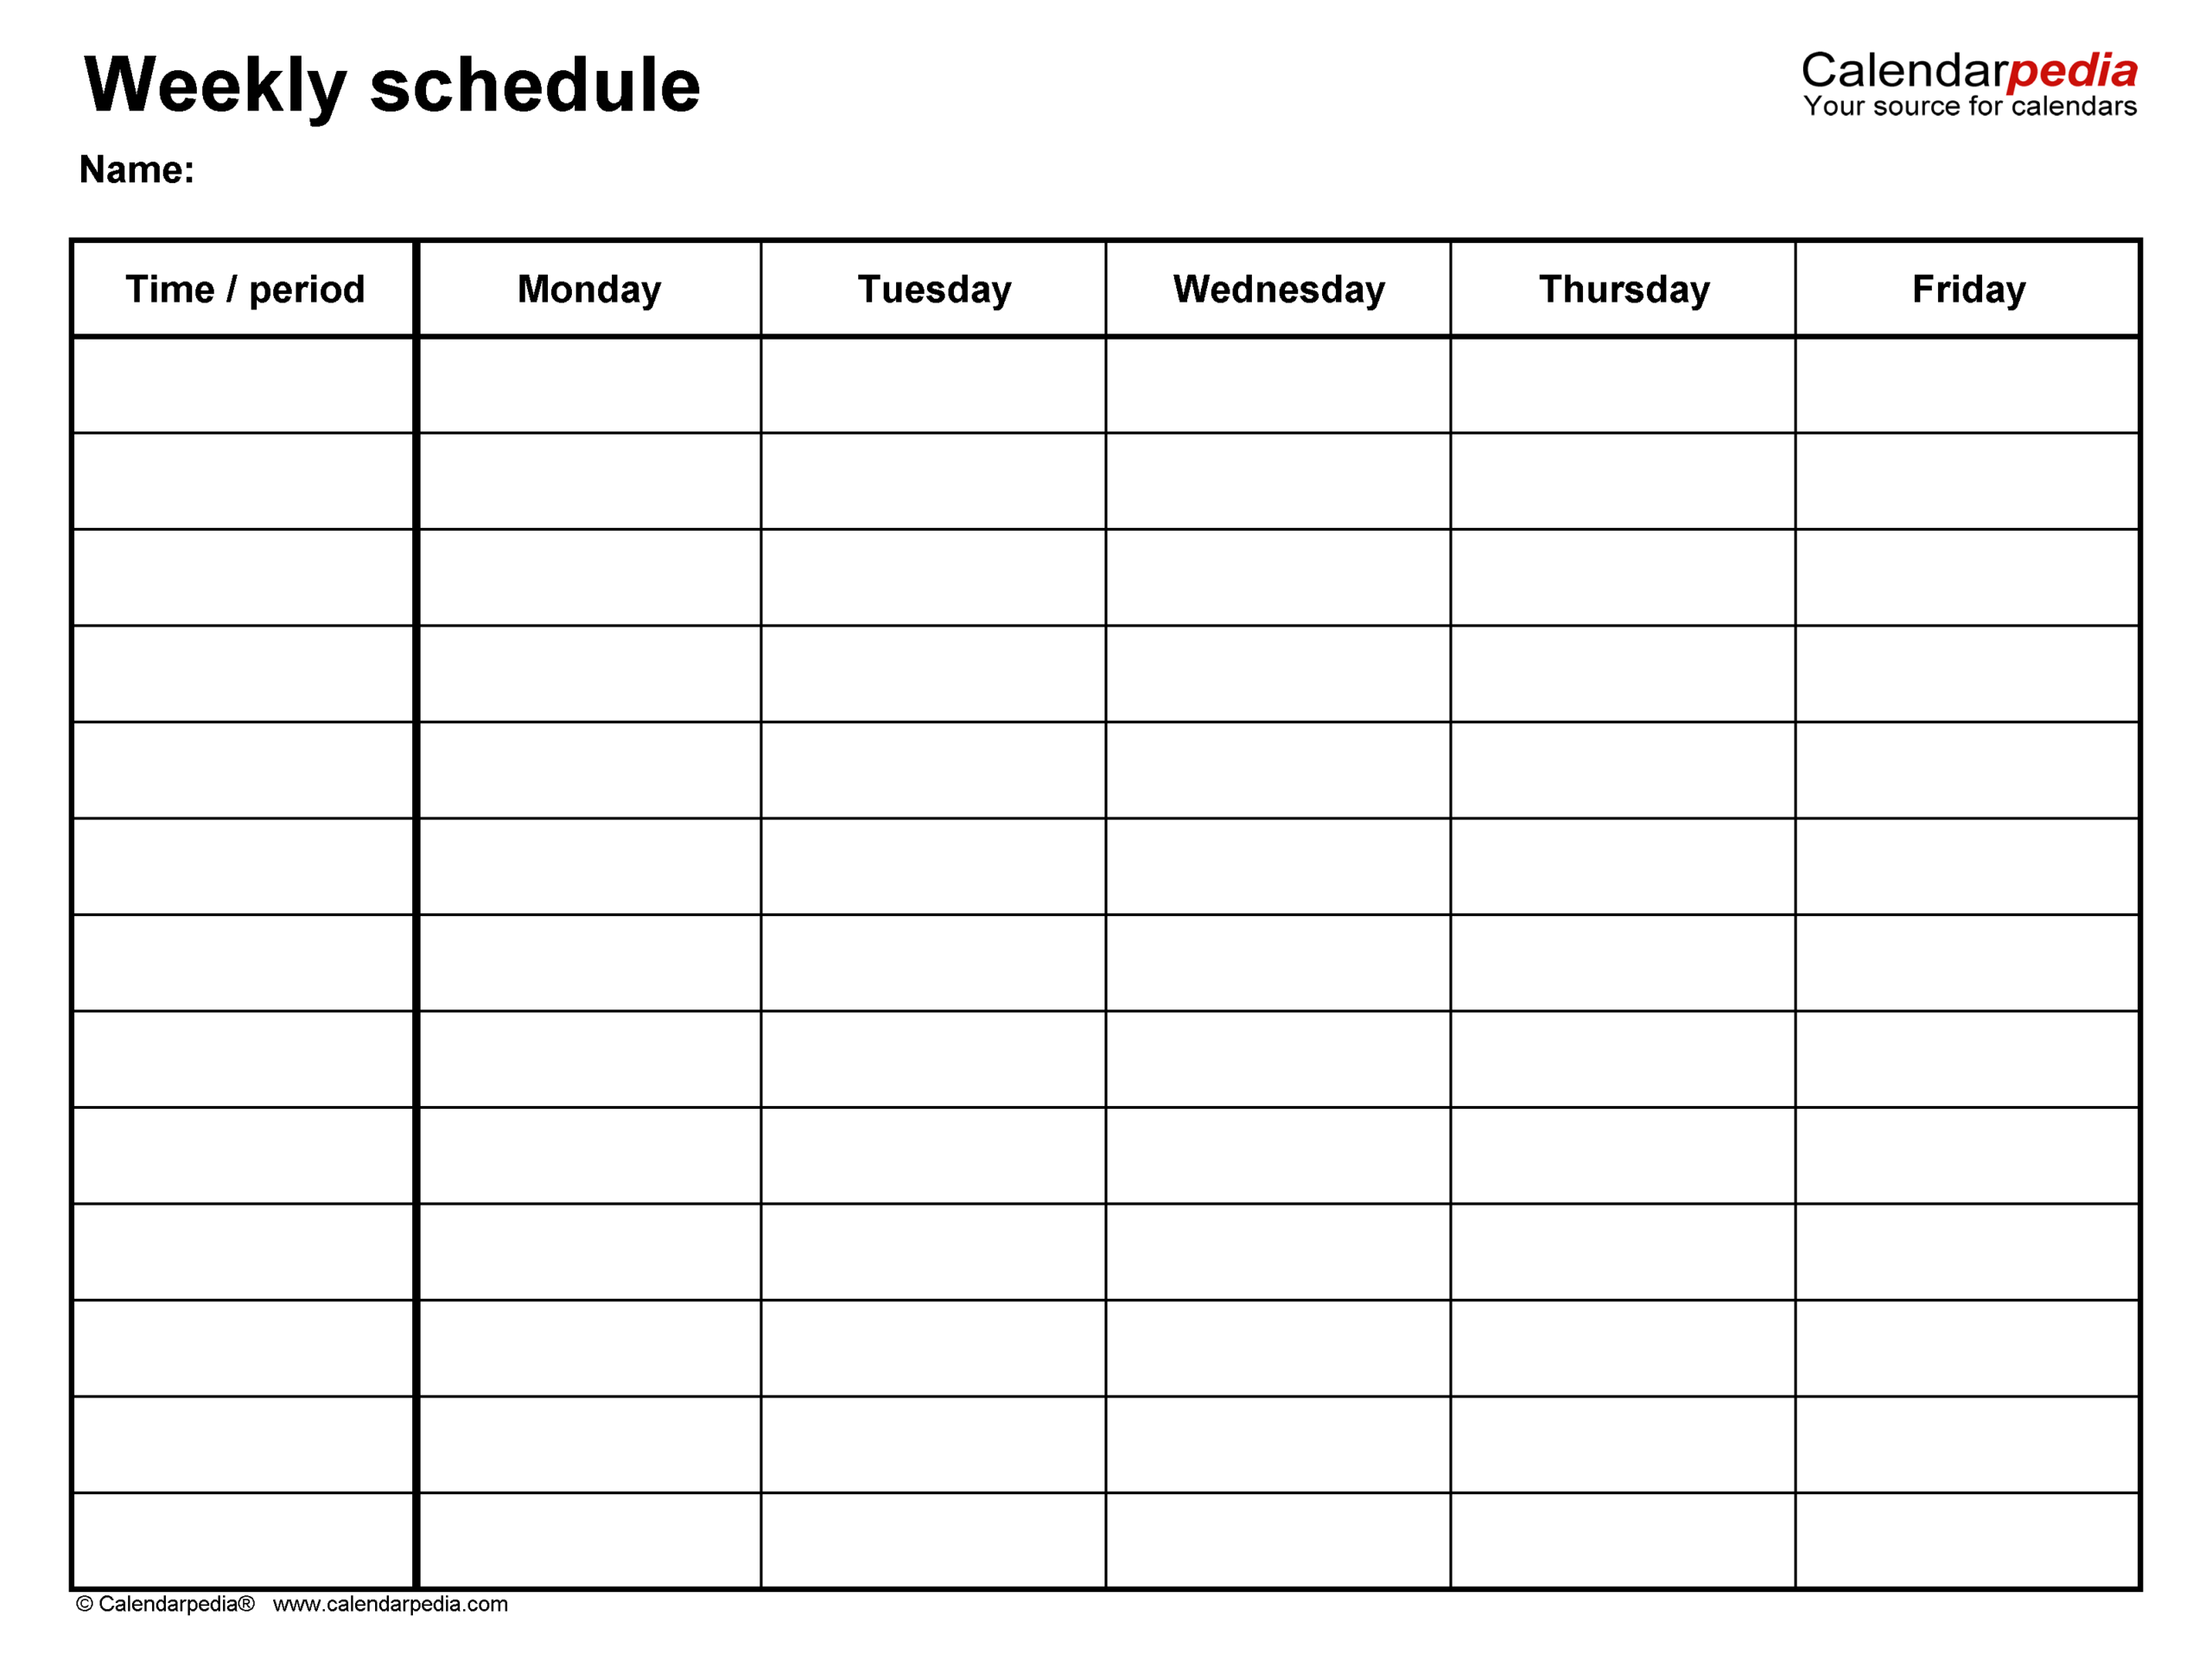 Free Weekly Schedules For Word  18 Templates for Blank 5 Day Calendar